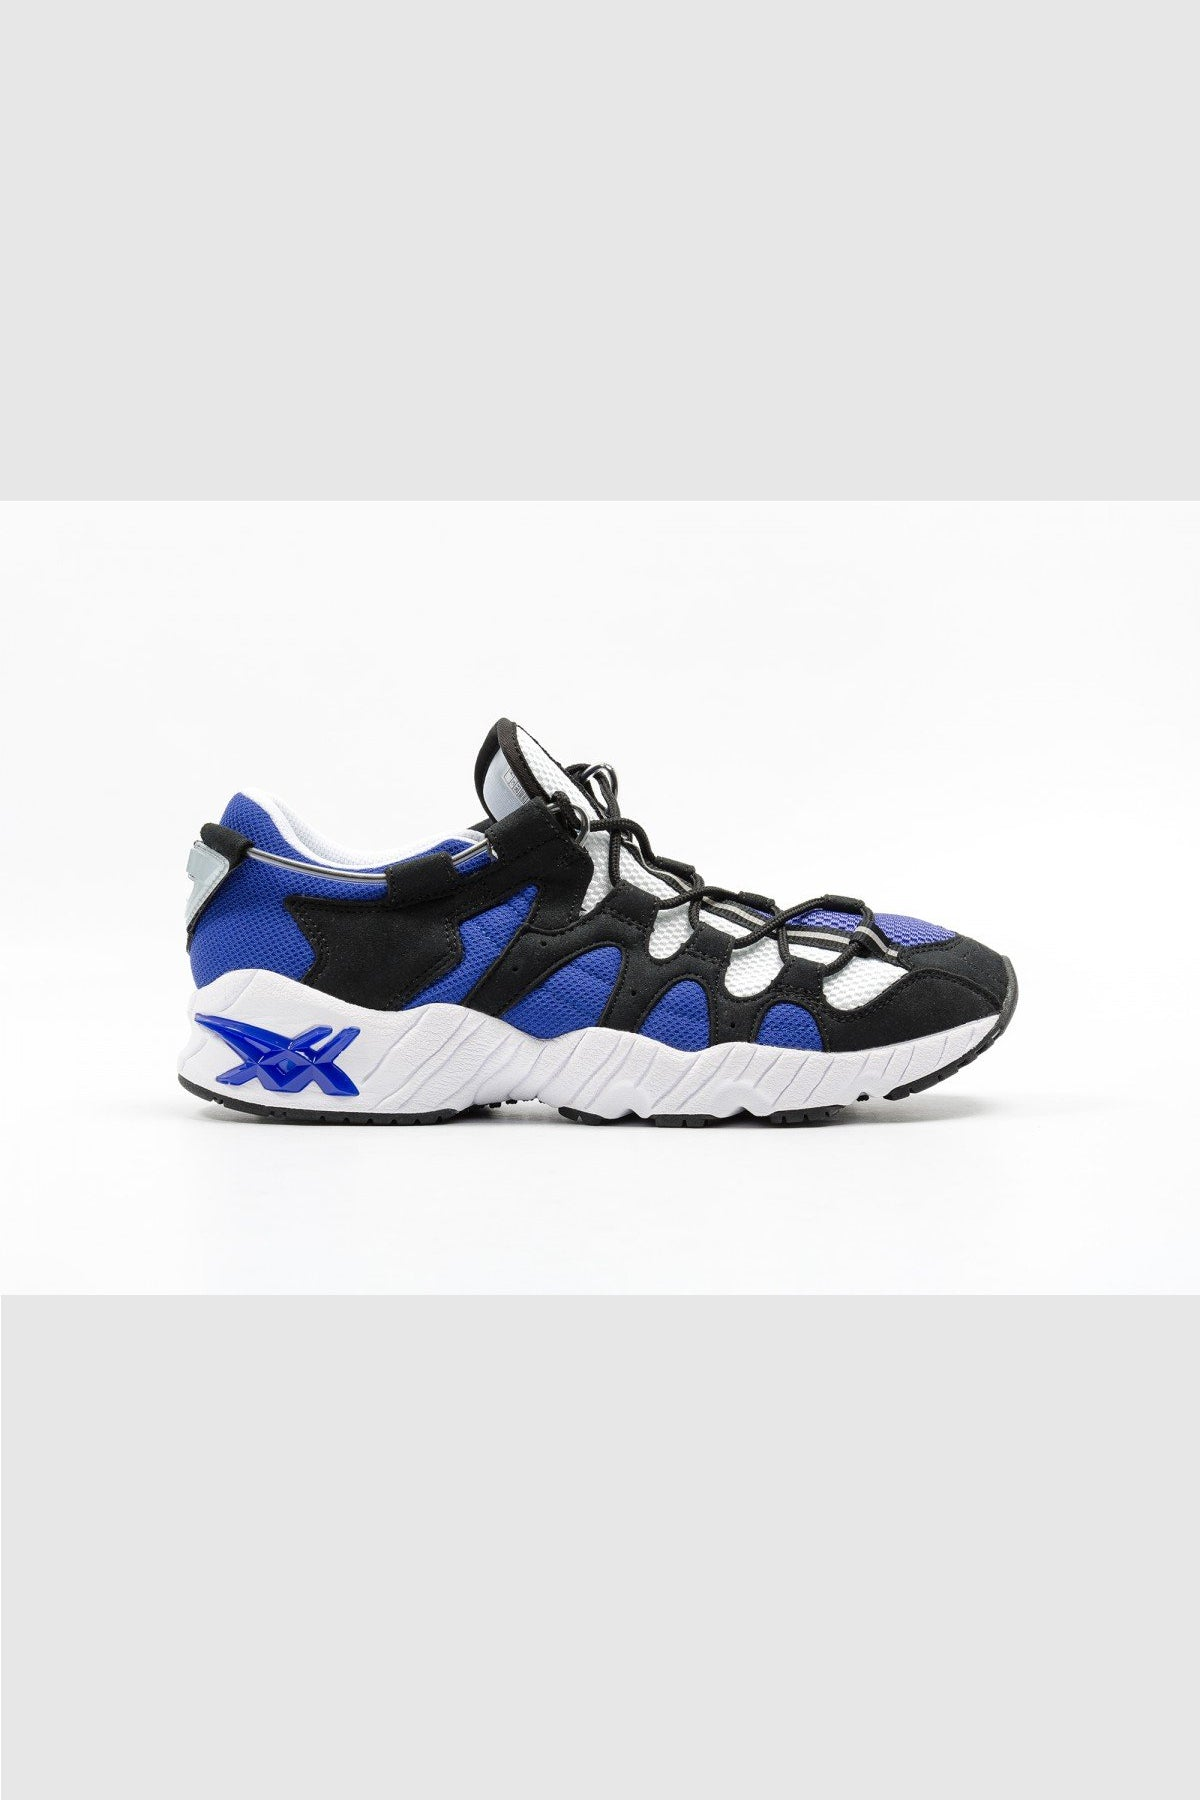 Asics - Gel Mai (Blue/ Black)